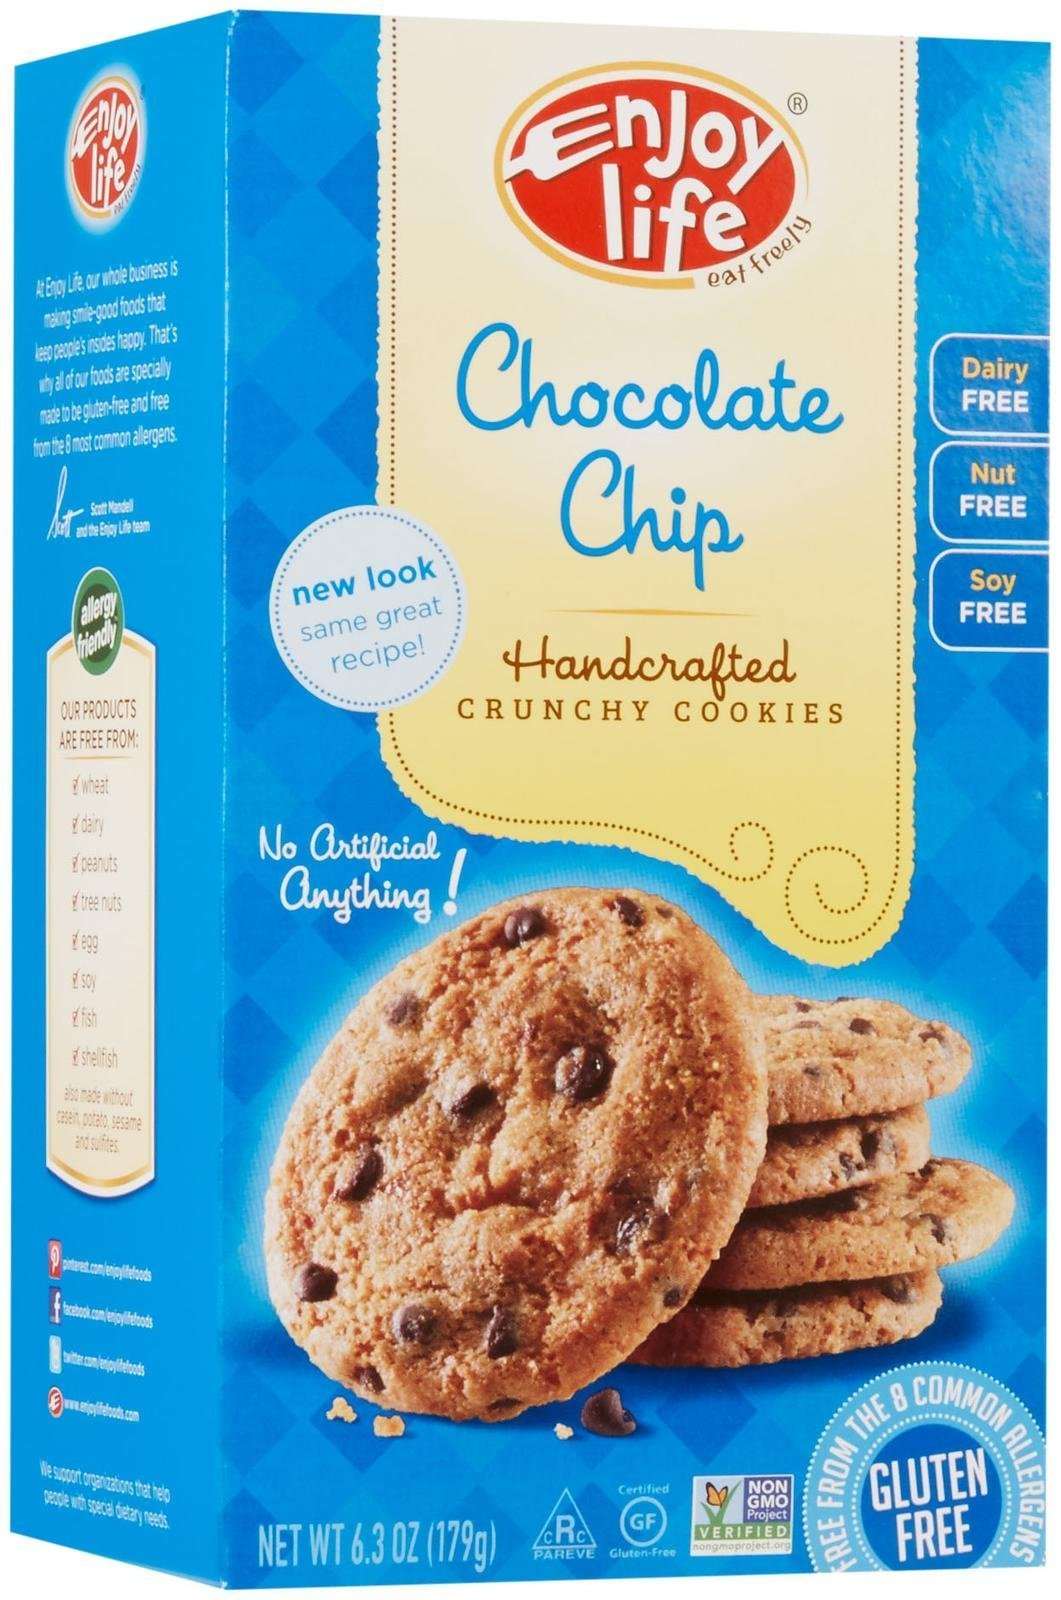 ENJOY LIFE Chocolate Chip Cookie, 6.3 OZ